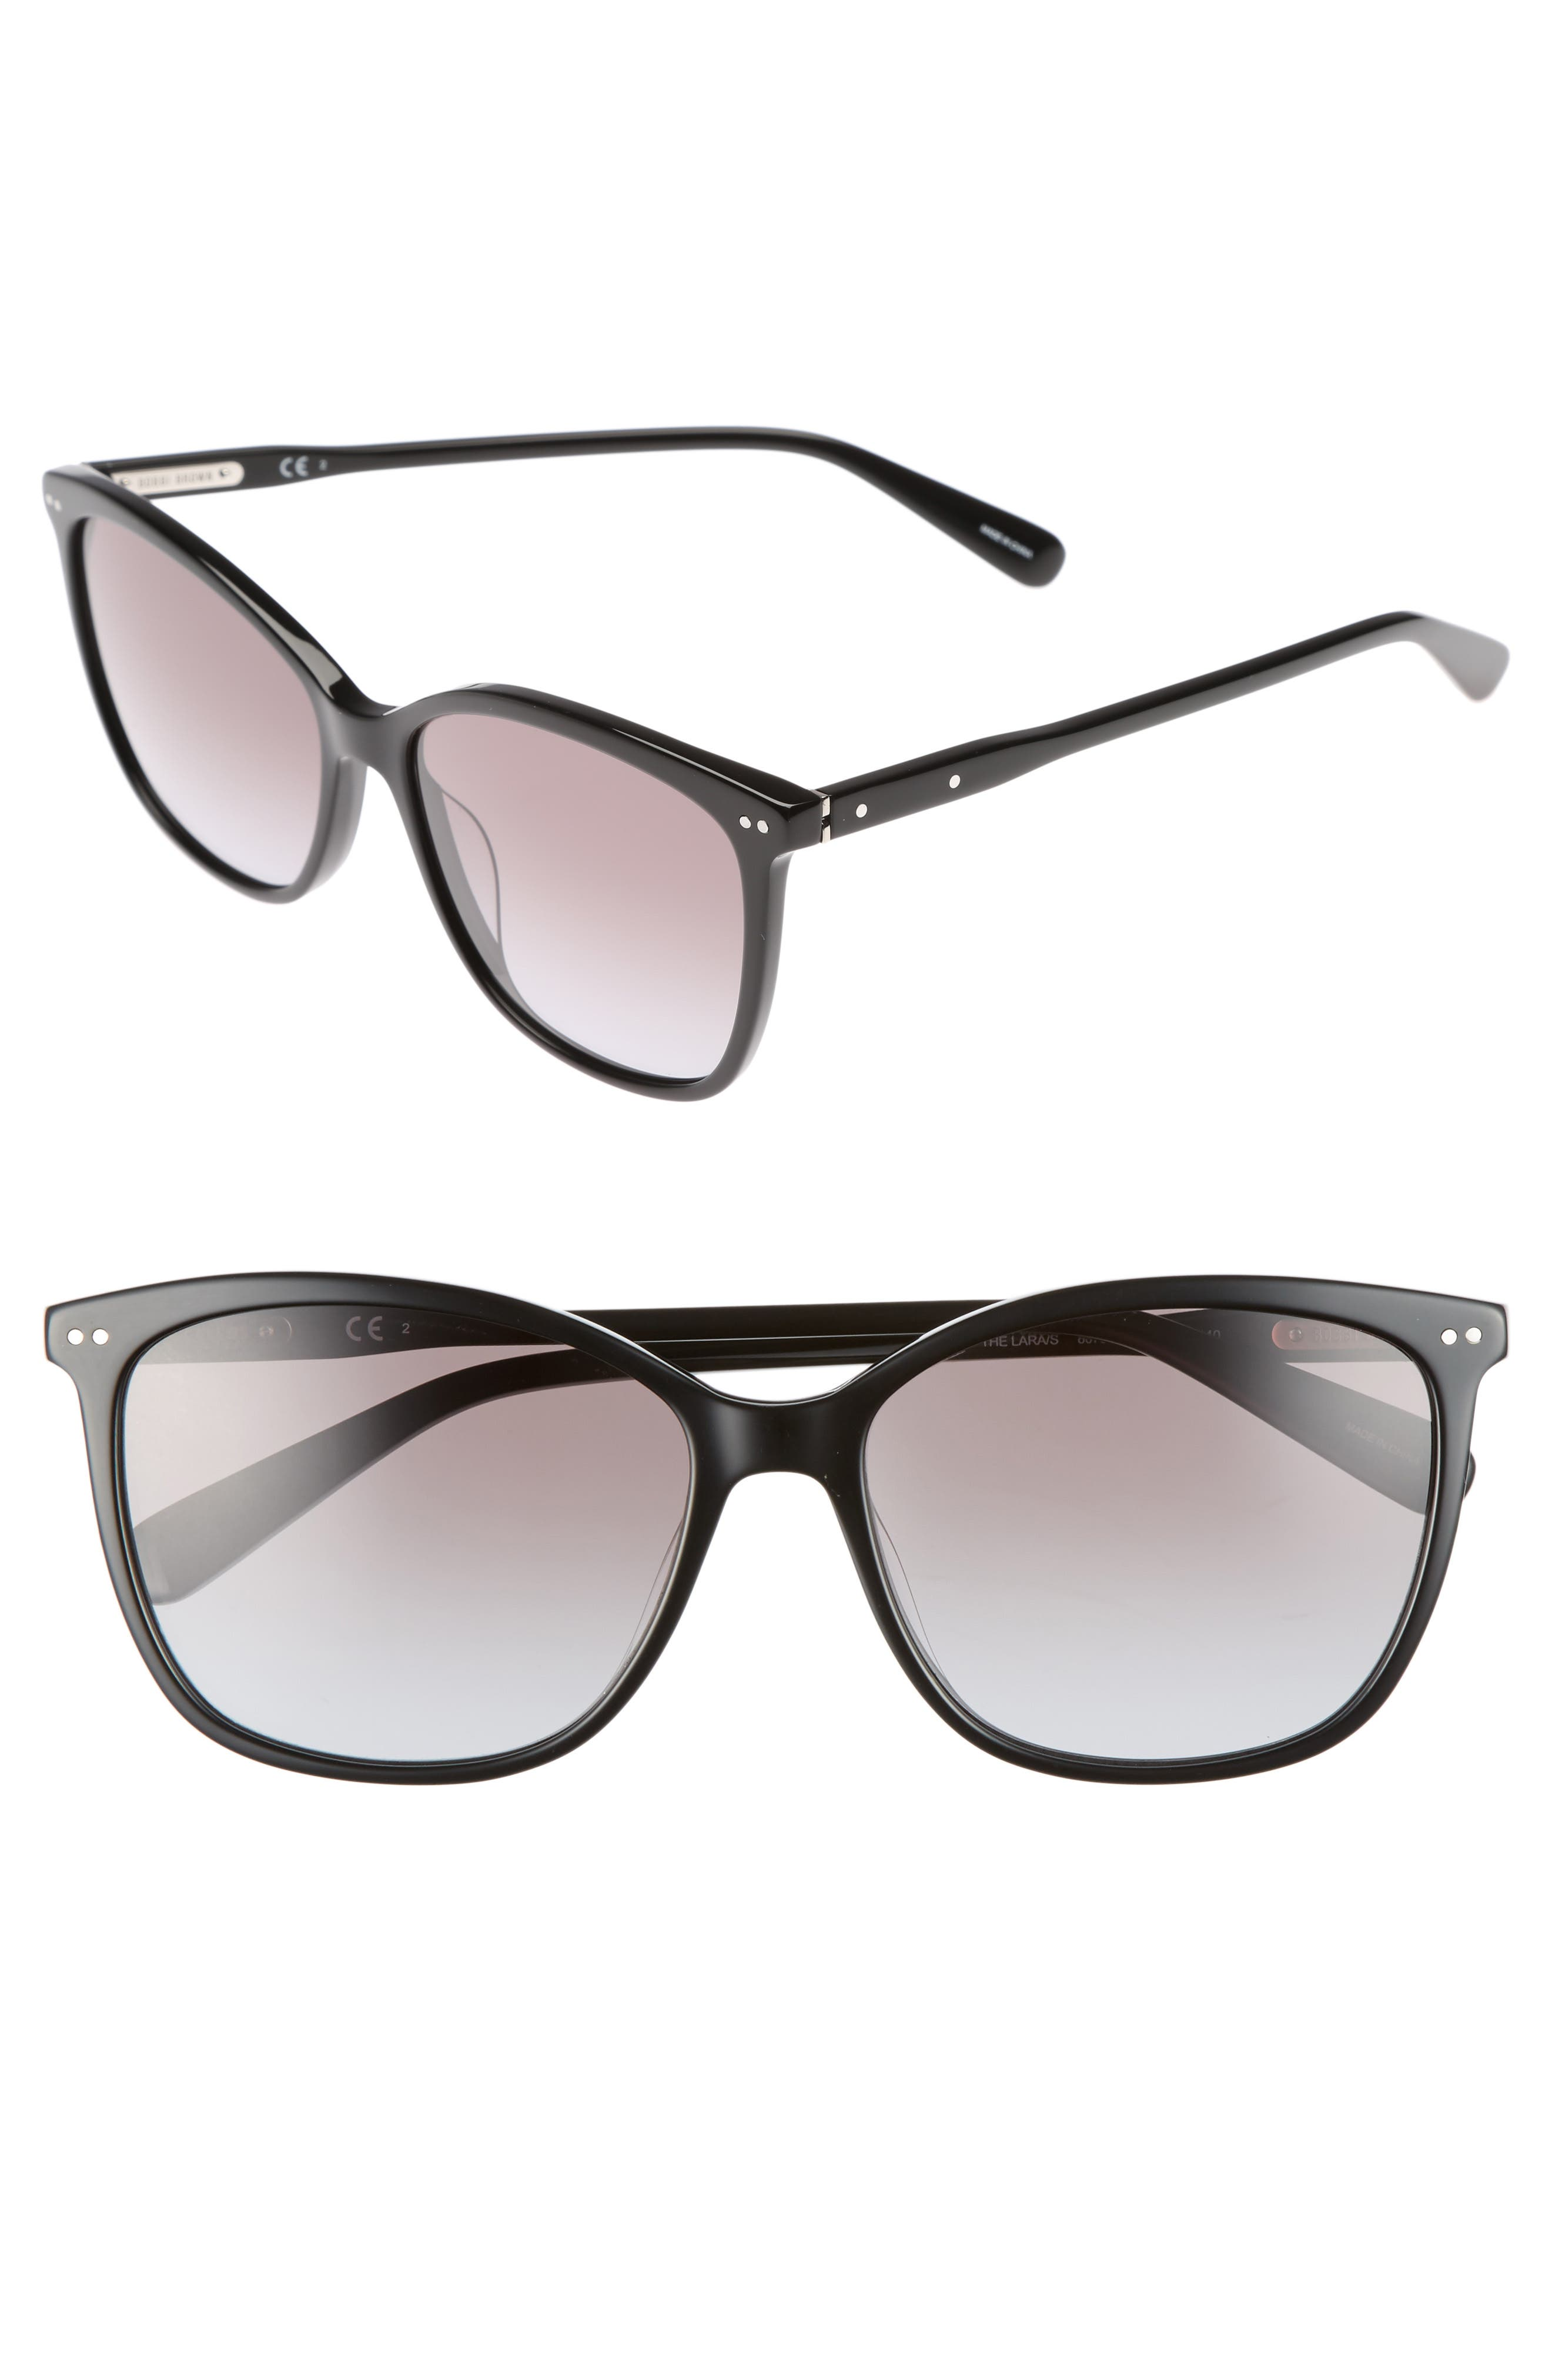 Main Image - Bobbi Brown The Lara 56mm Cat Eye Sunglasses